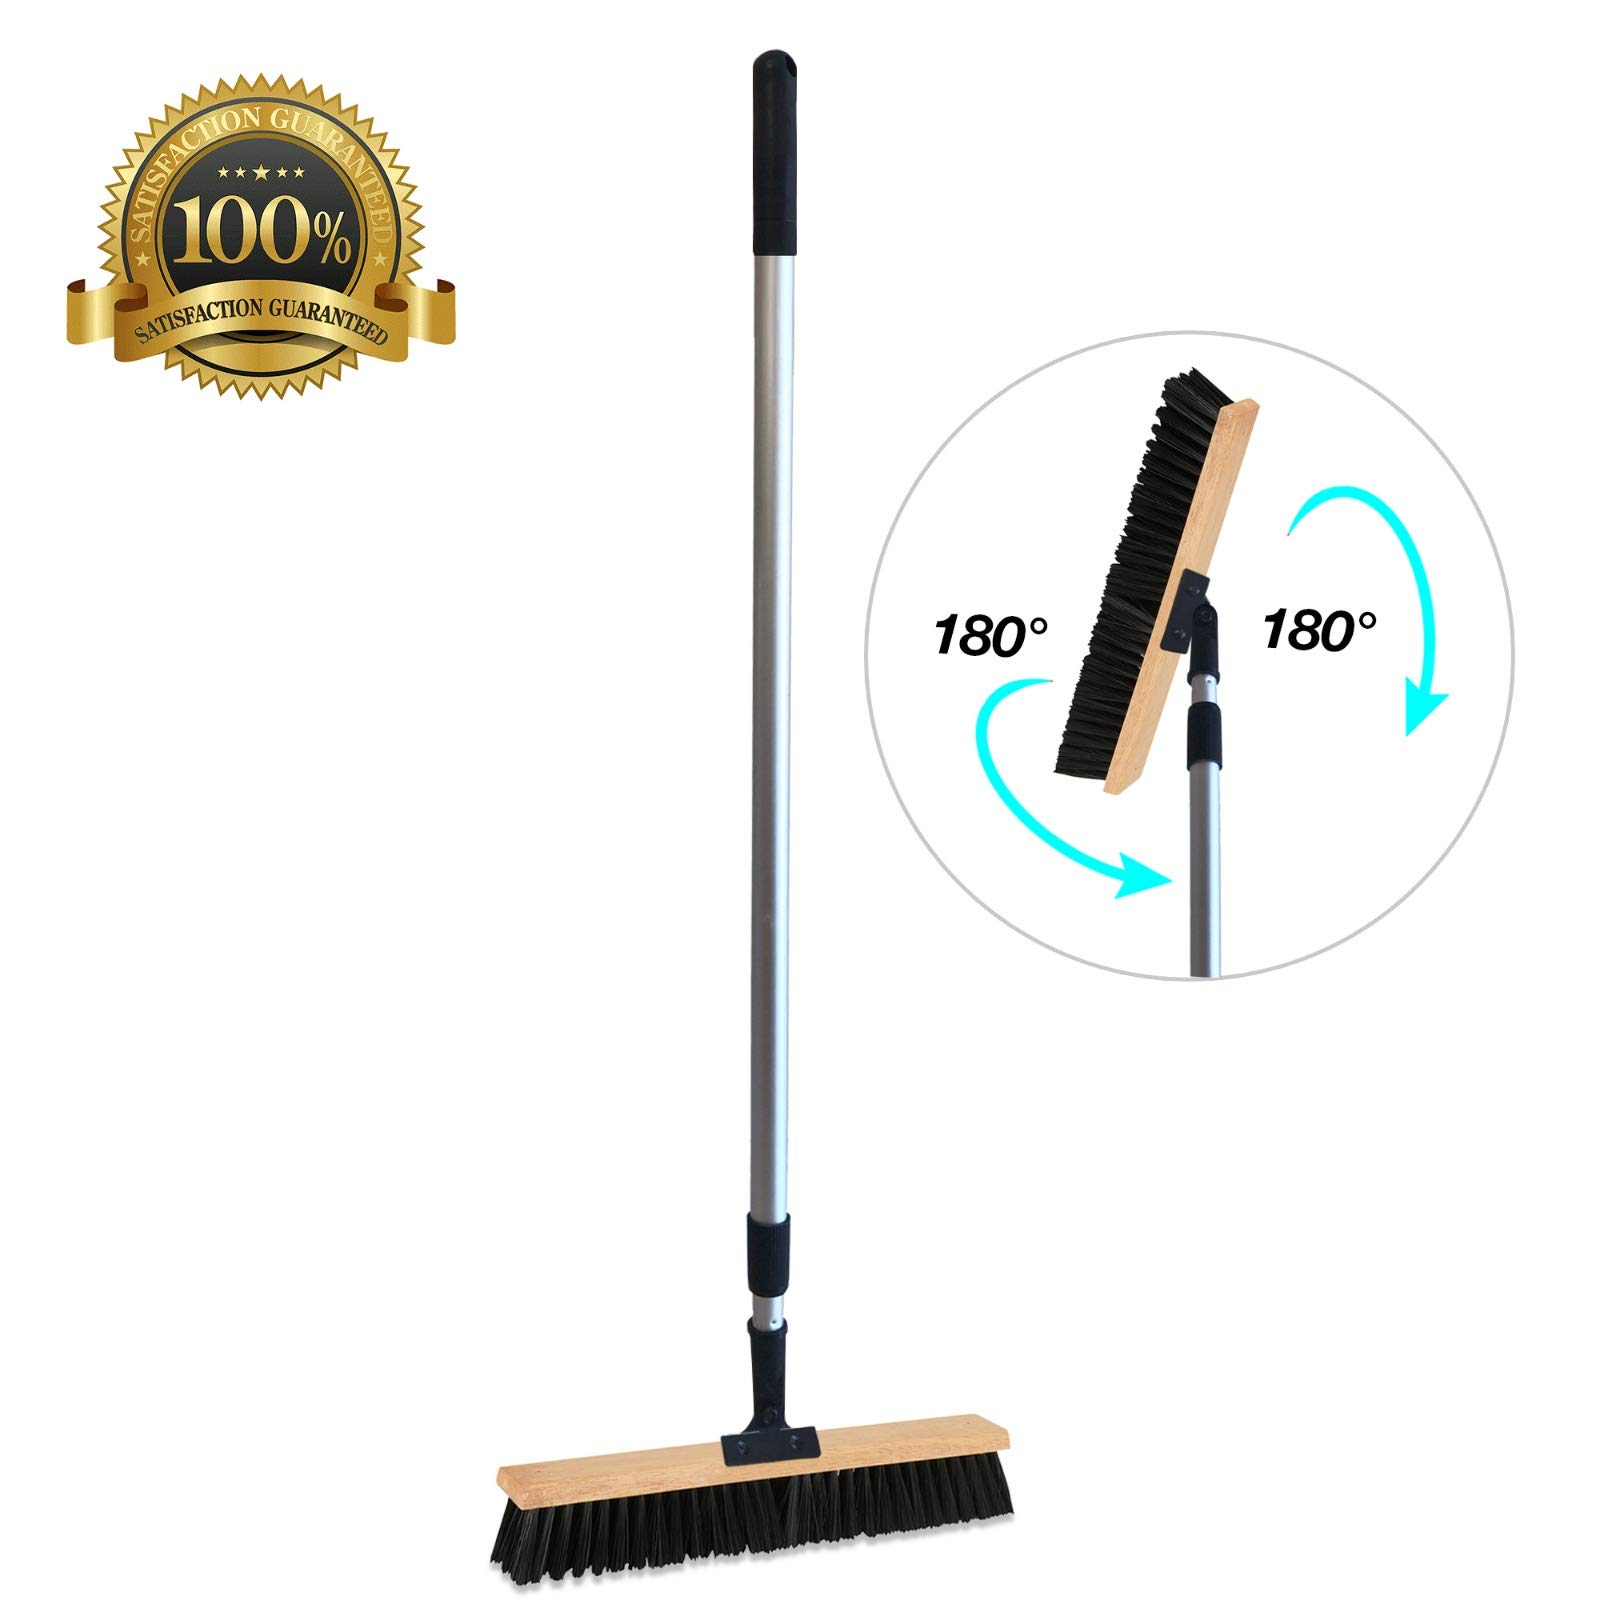 Sweep Stake Professional Swivel Push Broom   18-Inch Wide Floor Sweeper with Flexible Head and Telescoping Handle by UNIQUE HOUSEHOLD